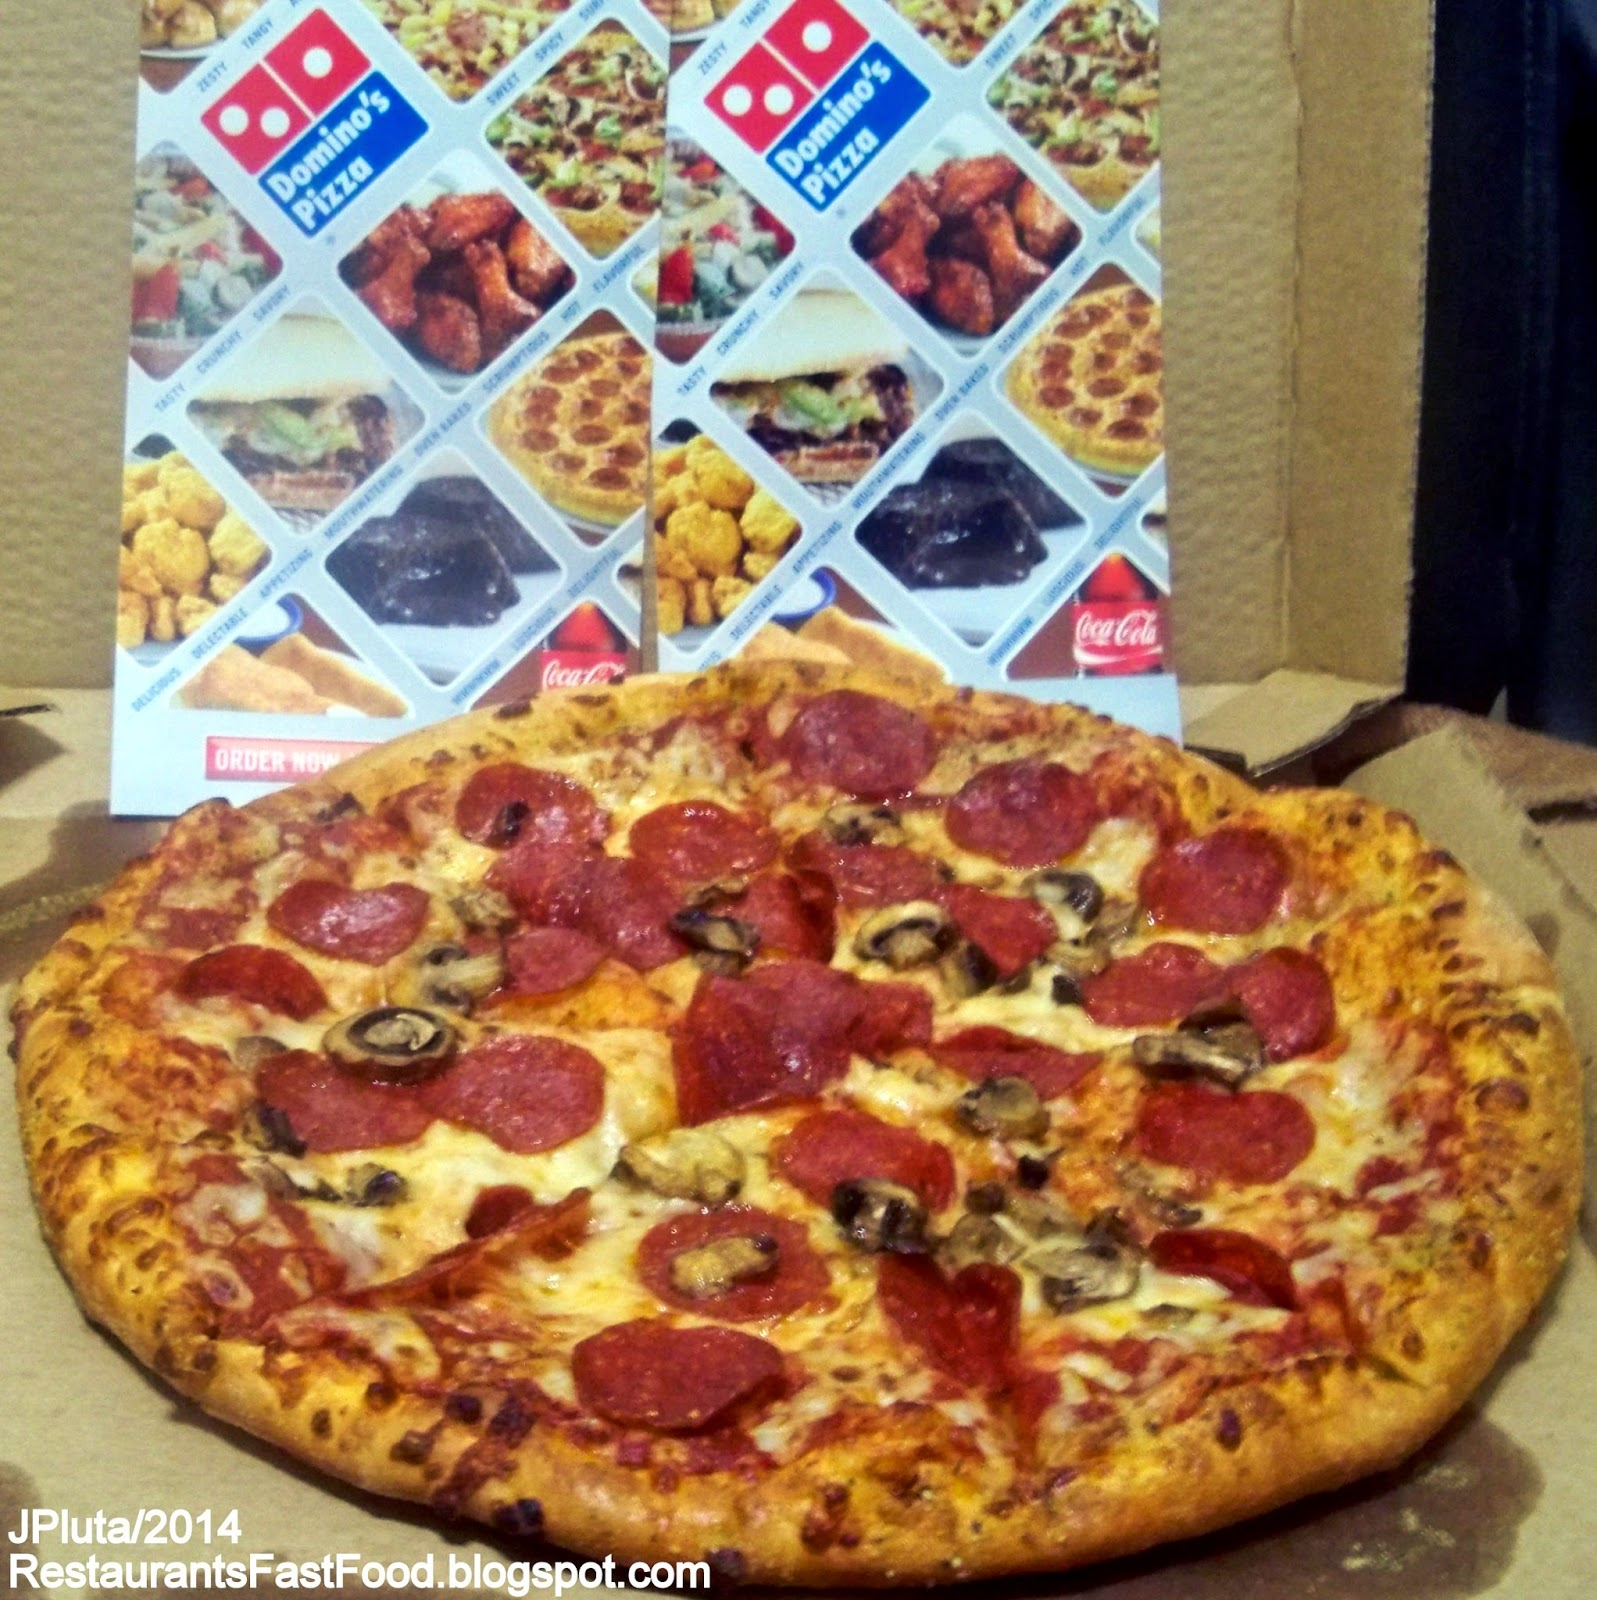 restaurant fast food menu mcdonald s dq bk hamburger pizza mexican domino s miami florida pizza delivery store 1638 ne 164th st miami fl 33162 domino s pizza delivery miami fl